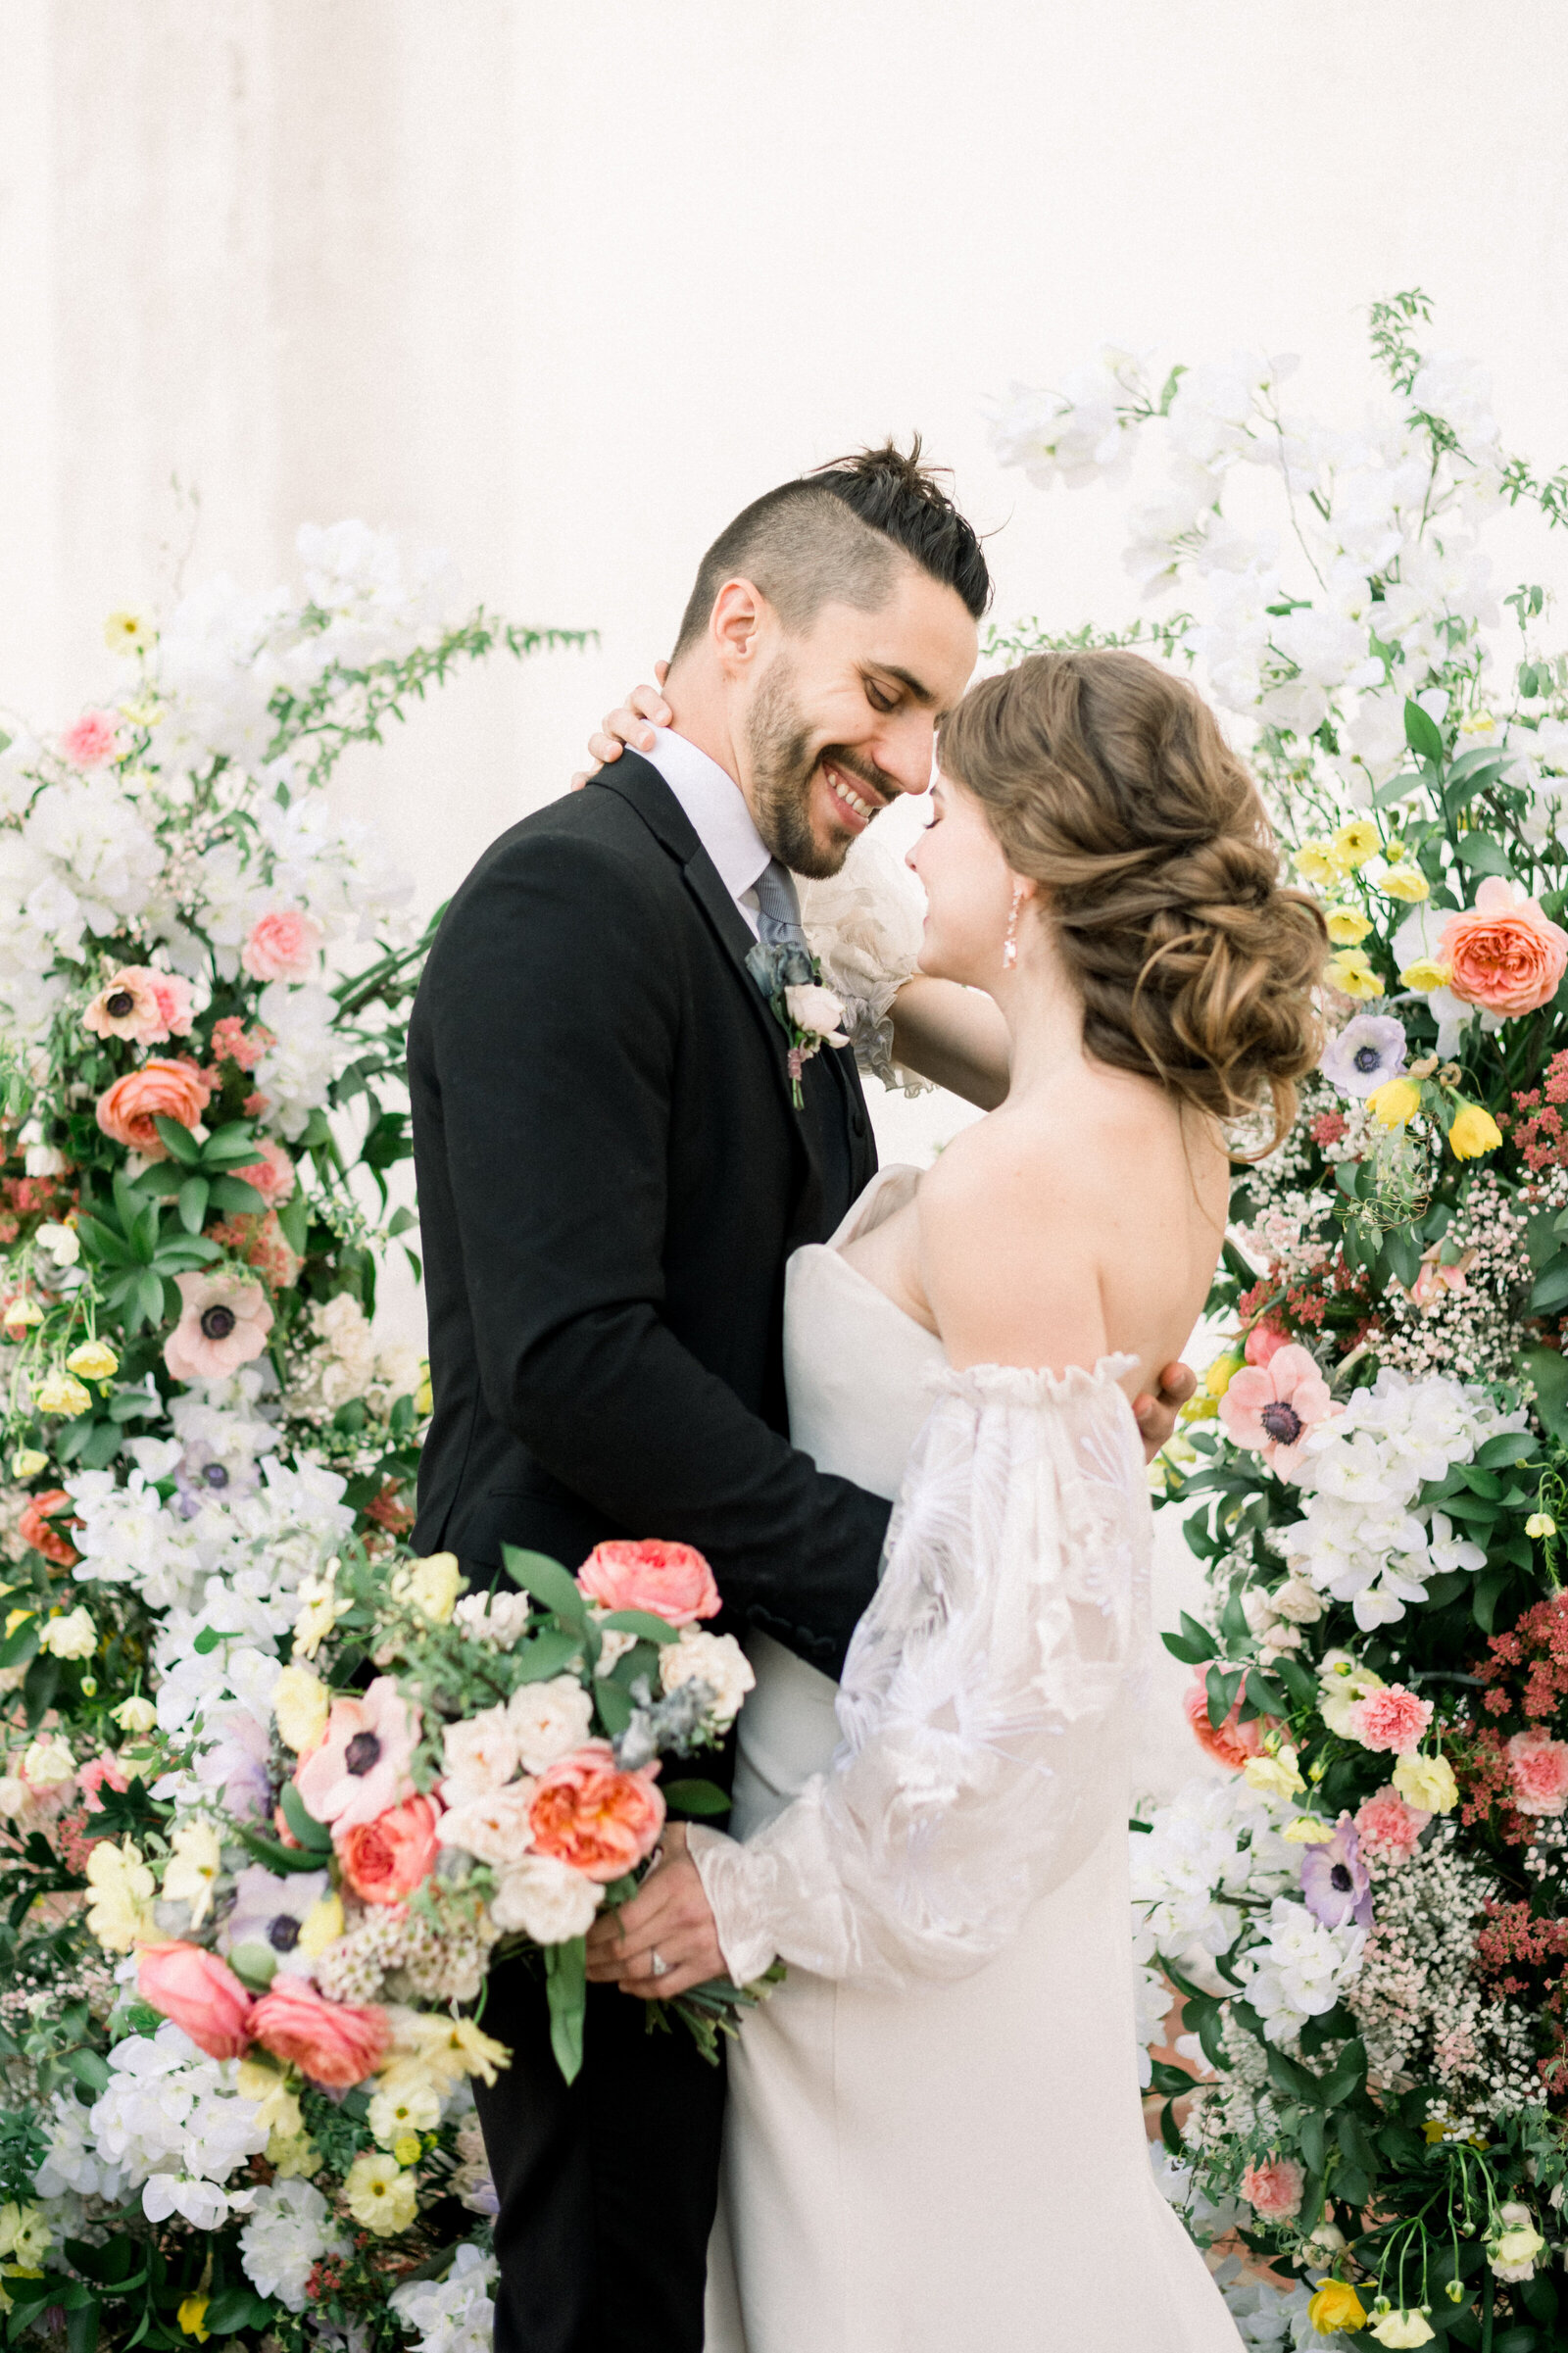 High end fine art wedding with pink dress and pops of color at the Junipero Serra Museum in San Diego by Liz Andolina Photography-50